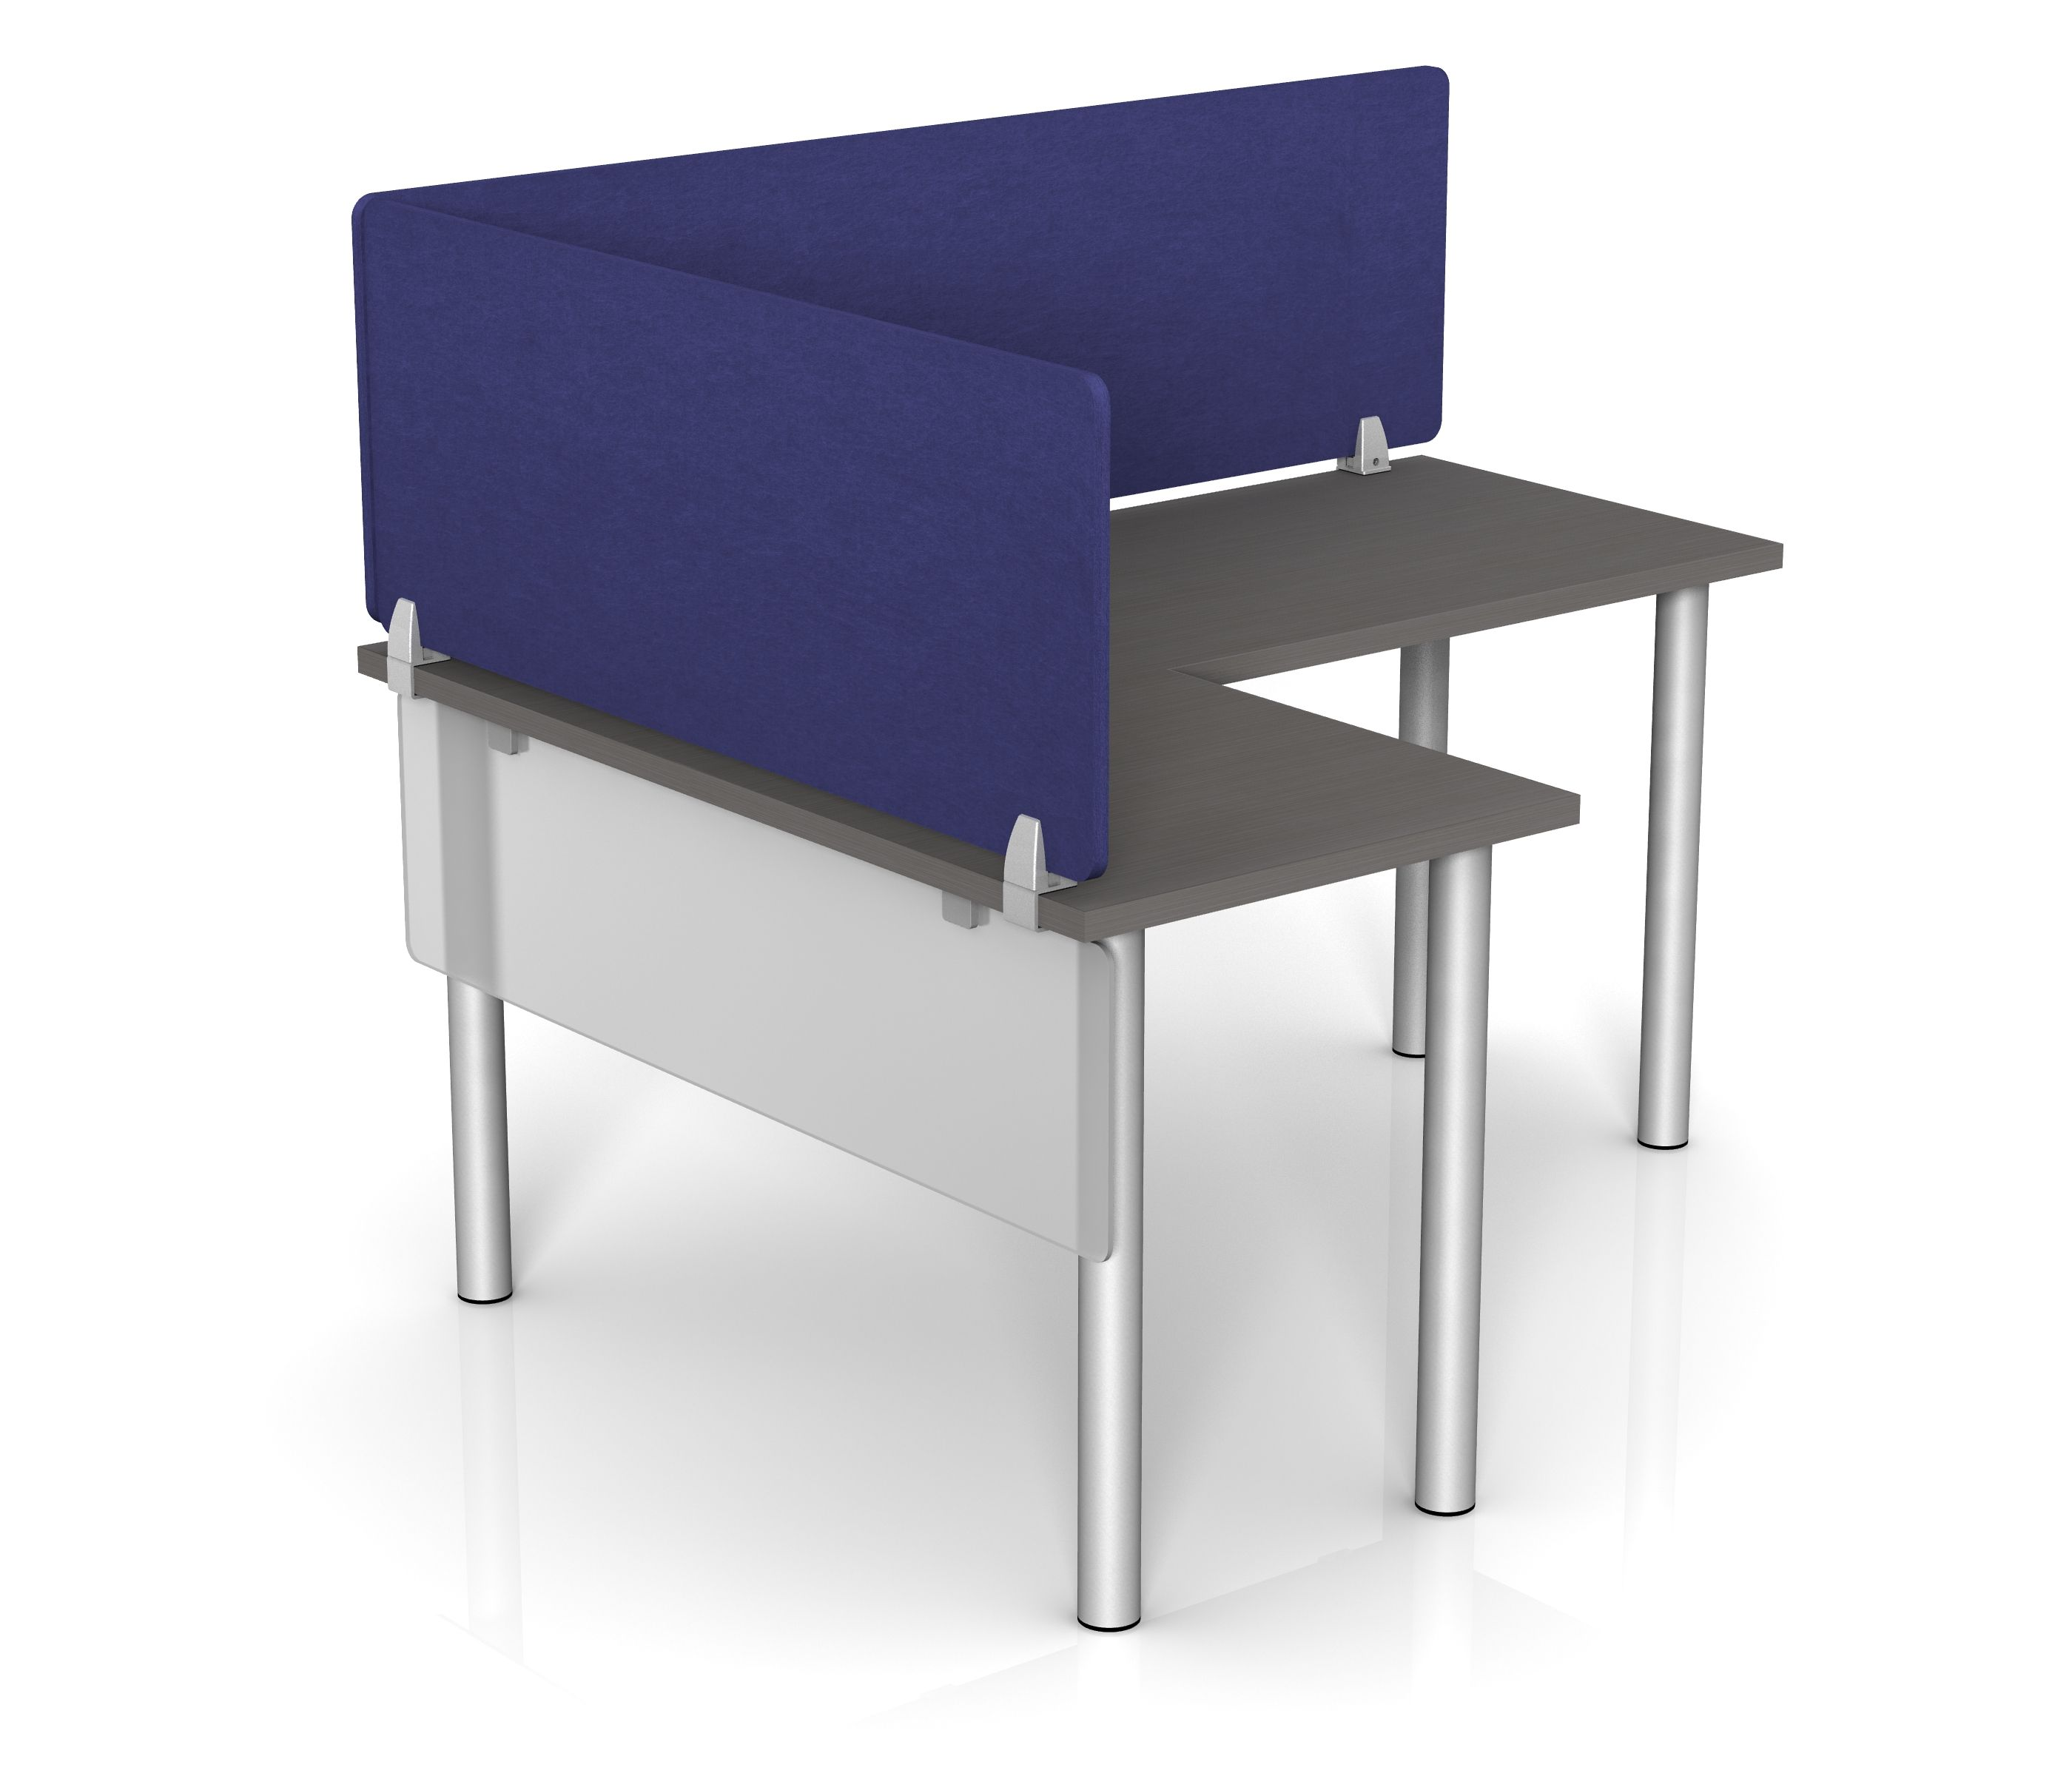 Office desk dividers Study Table Echoscape Desk Dividers Provide Both Sound And Visual Privacy Our Ecofriendly Panels Absorb Up To 90 Of Sound Paradiceukco Echoscape Desk Dividers Provide Both Sound And Visual Privacy Our